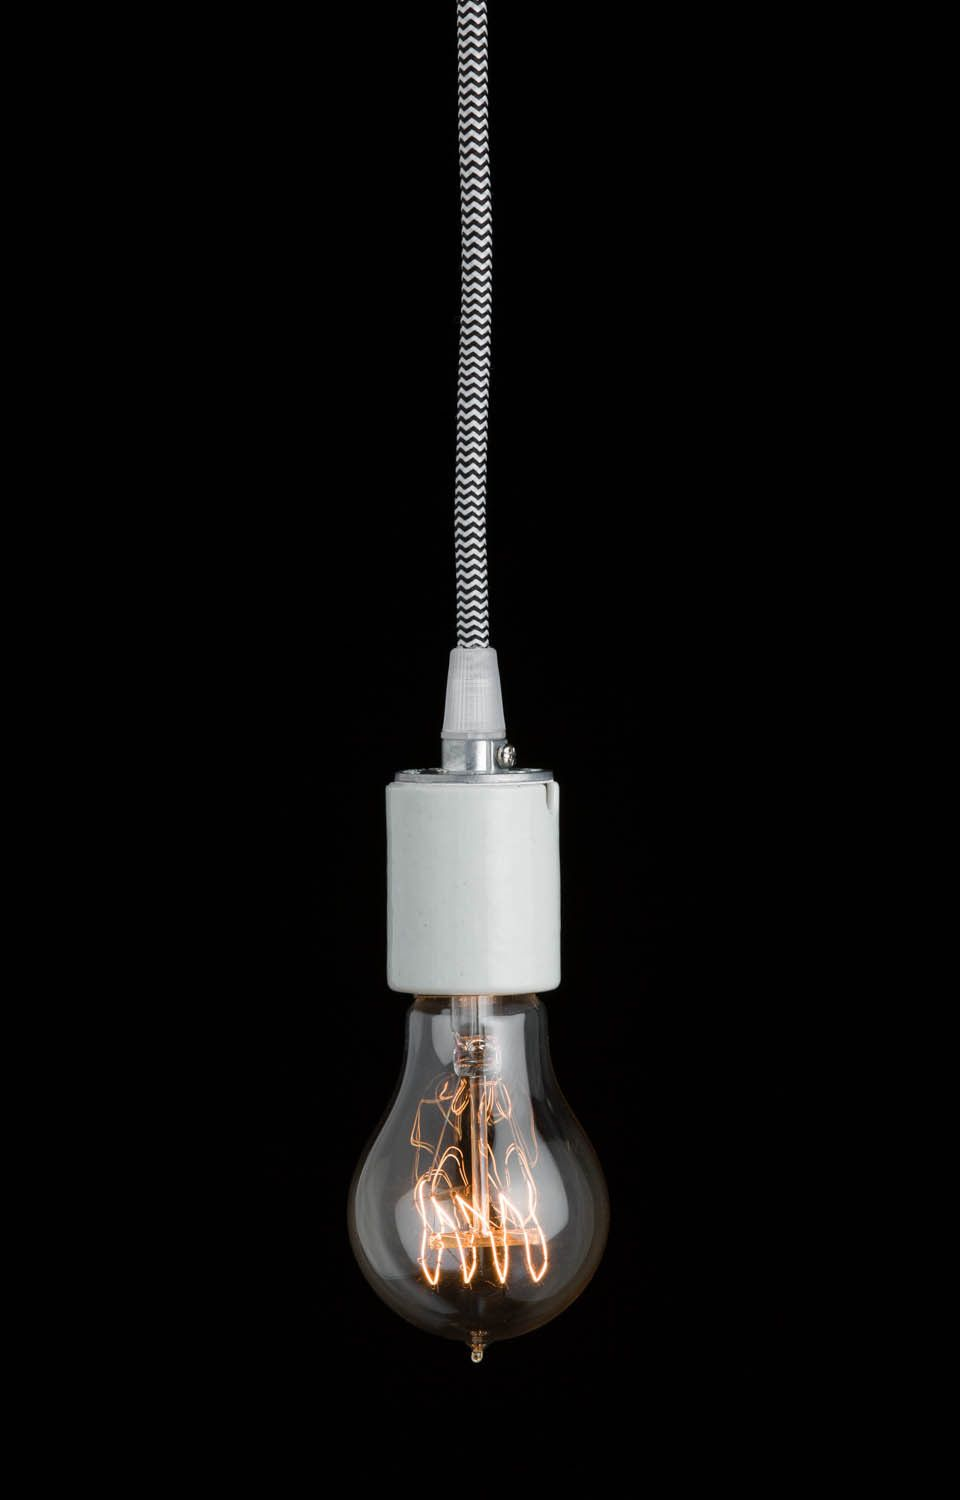 Joule bulb vintage lightbulb 60w color cord company for Pendulum light globes